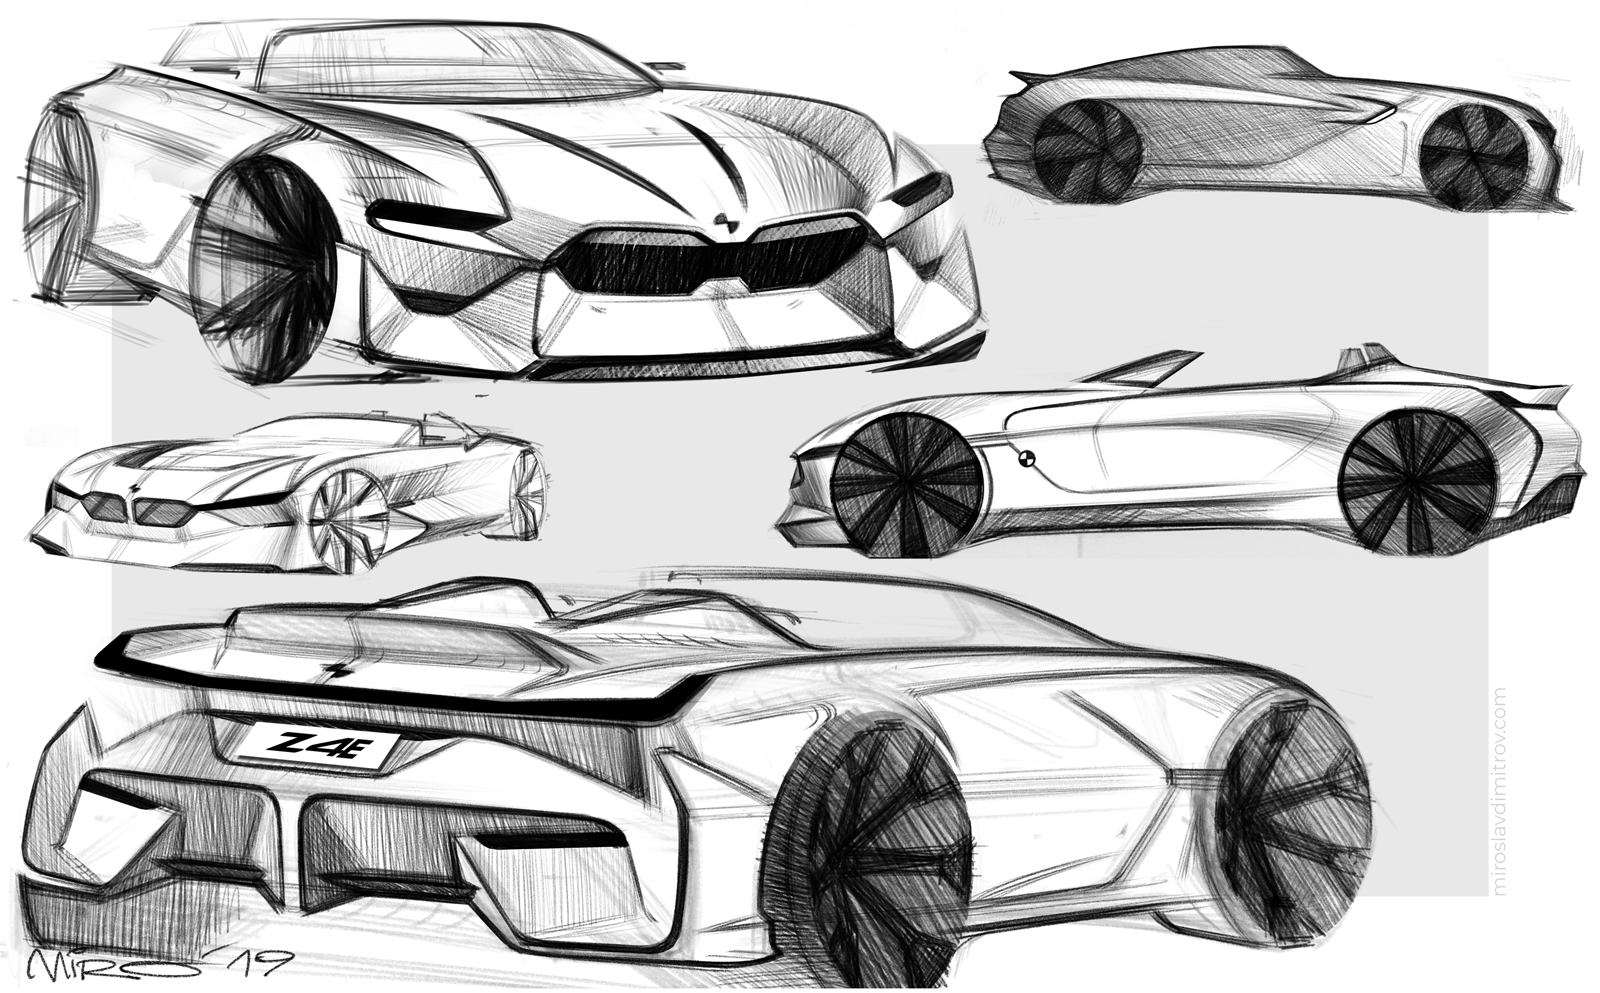 BMW Z4 Electric, Design Sketch by Miroslav Dimitrov © 2019 Miroslav Dimitrov